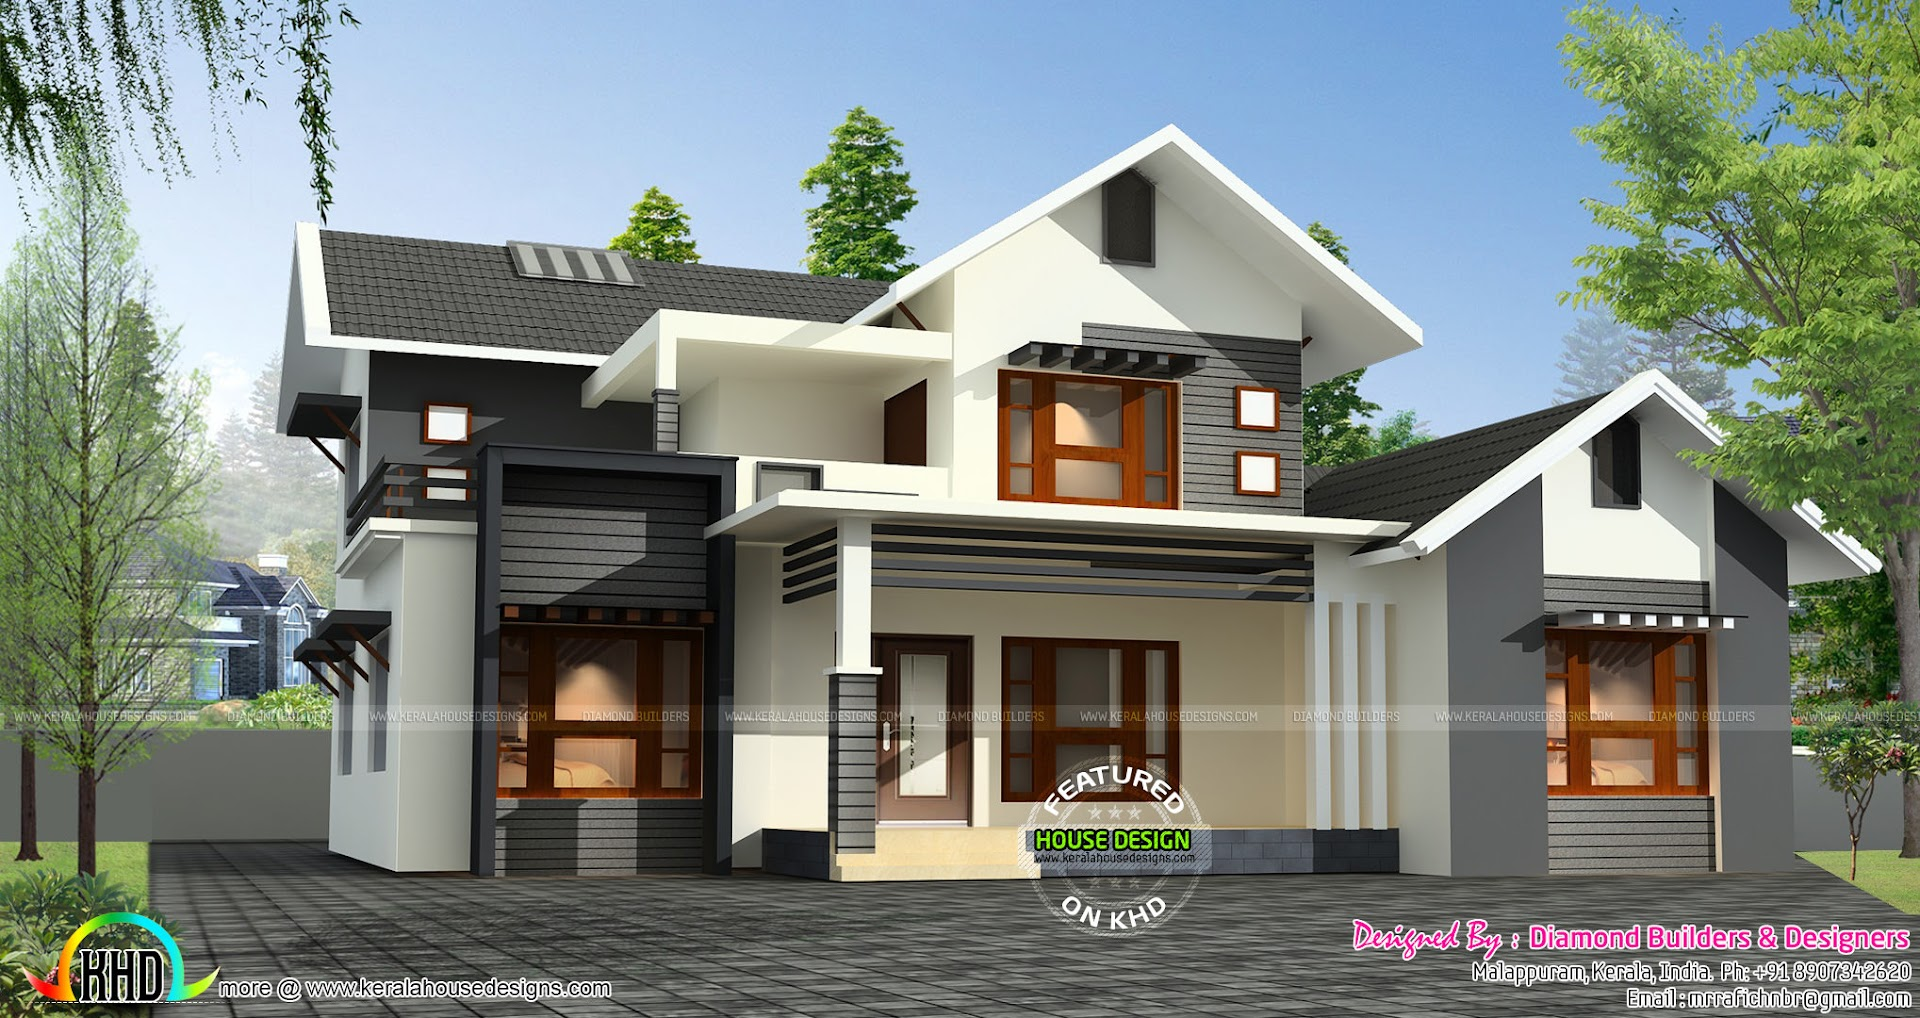 Modern sloped roof house plans - Modern house designs with attic ...